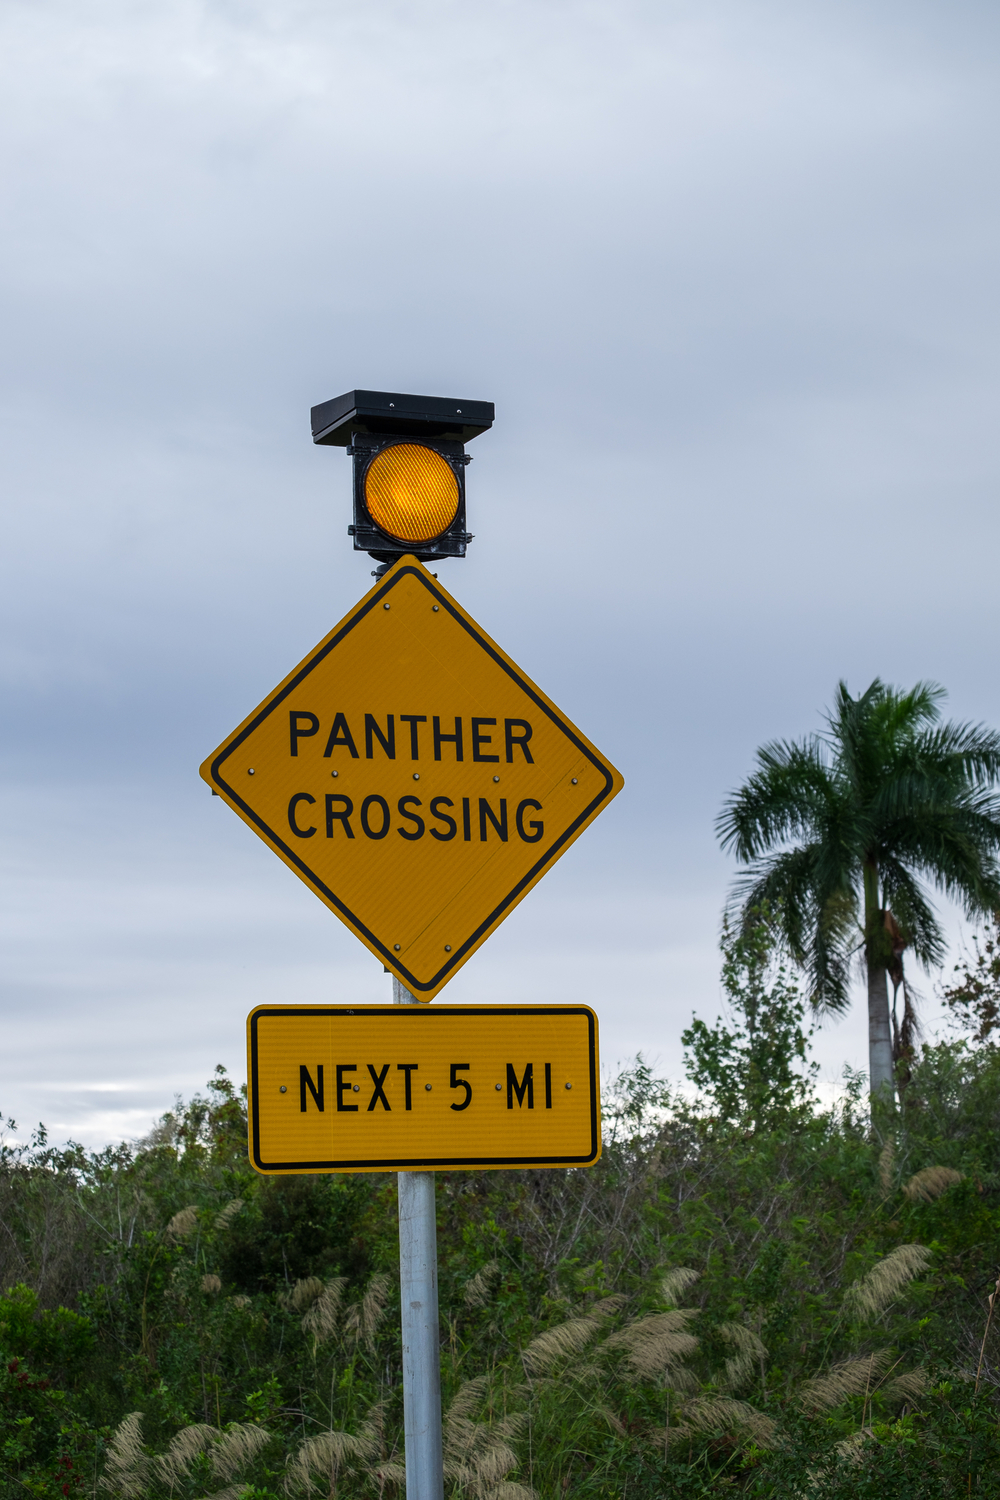 Panther Crossing in Everglades National Park in Florida.